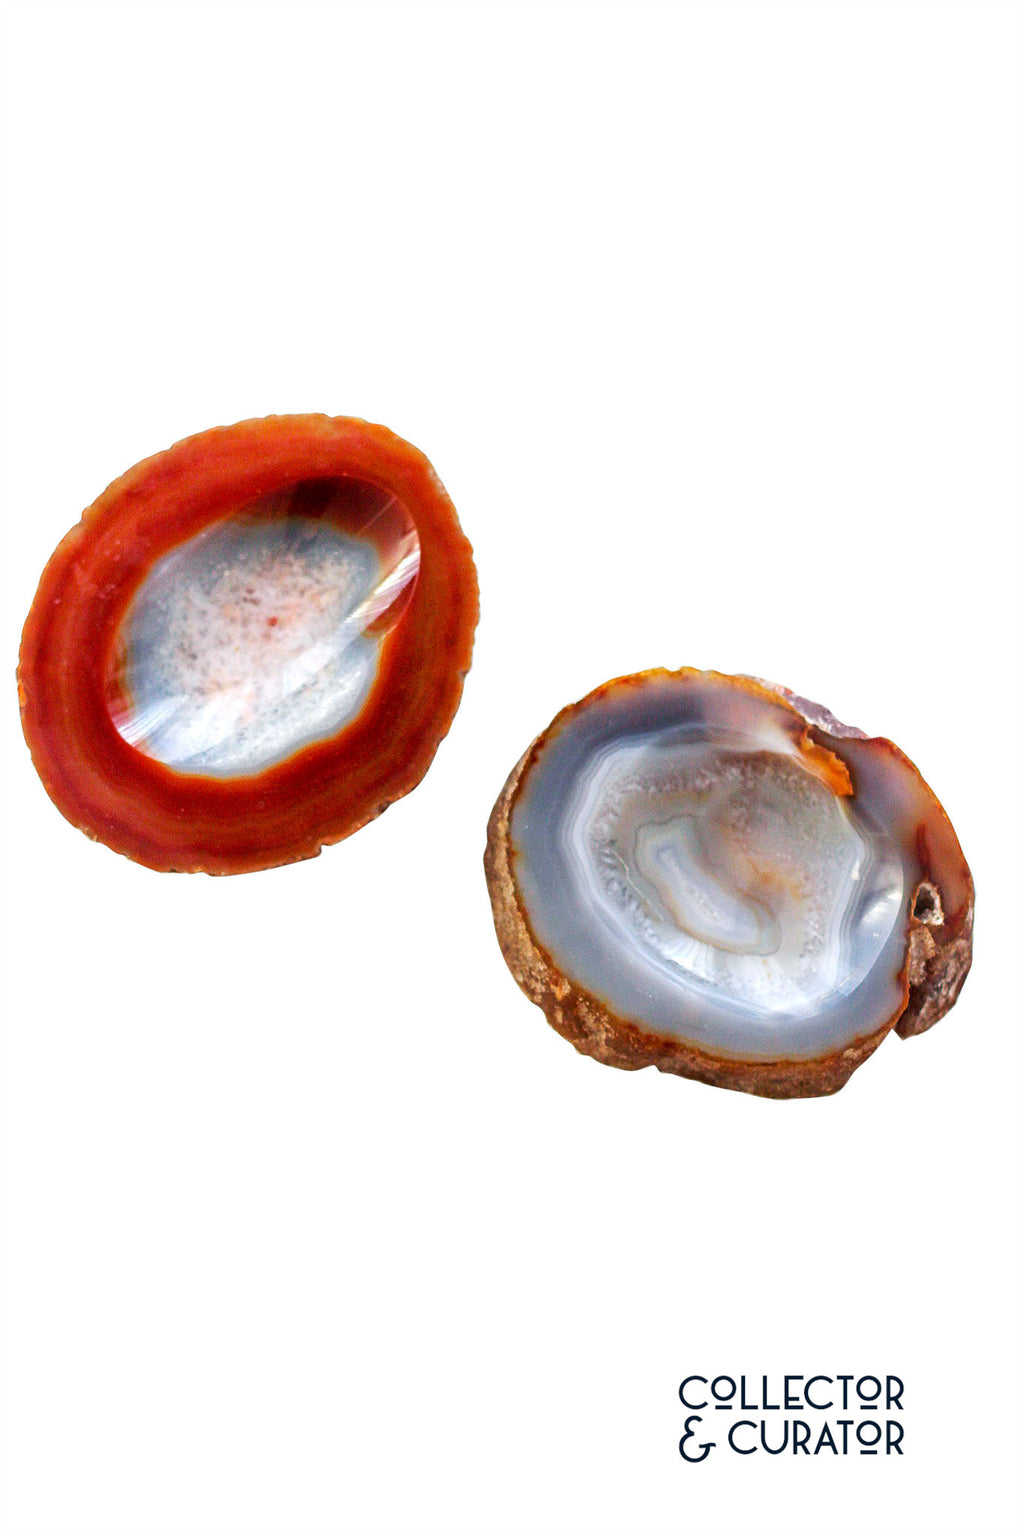 Agate Catchall Dish - Collector & Curator